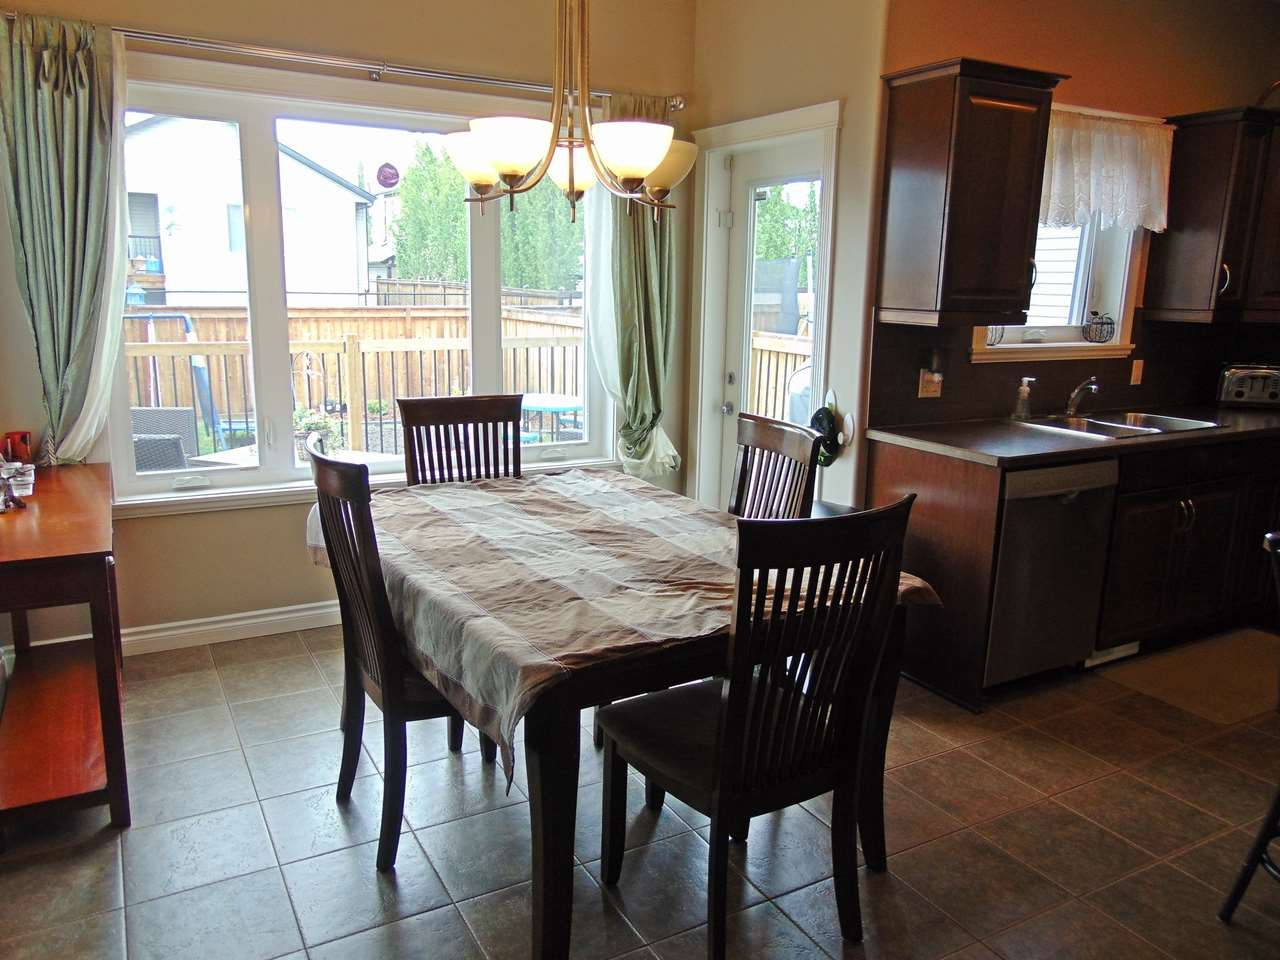 Photo 9: 5220 39 Avenue: Gibbons House for sale : MLS(r) # E4066111